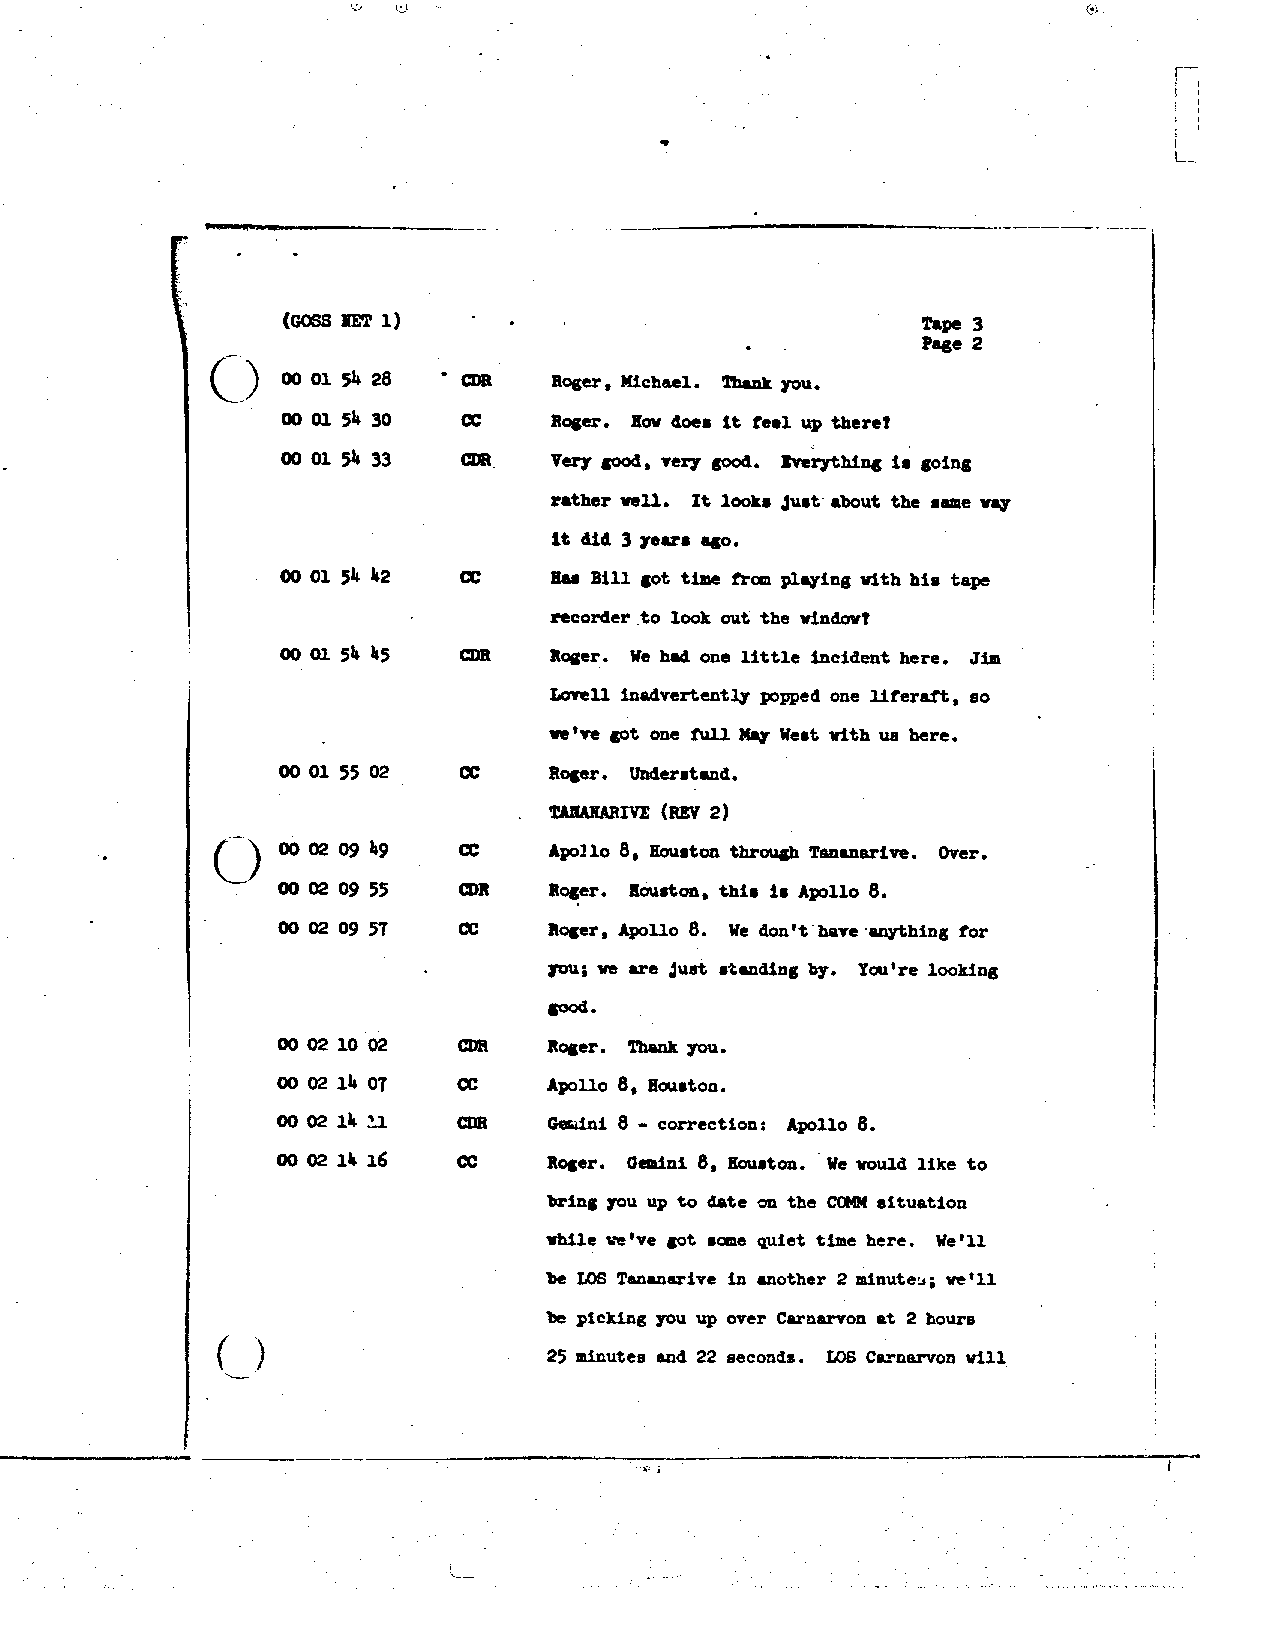 Page 19 of Apollo 8's original transcript